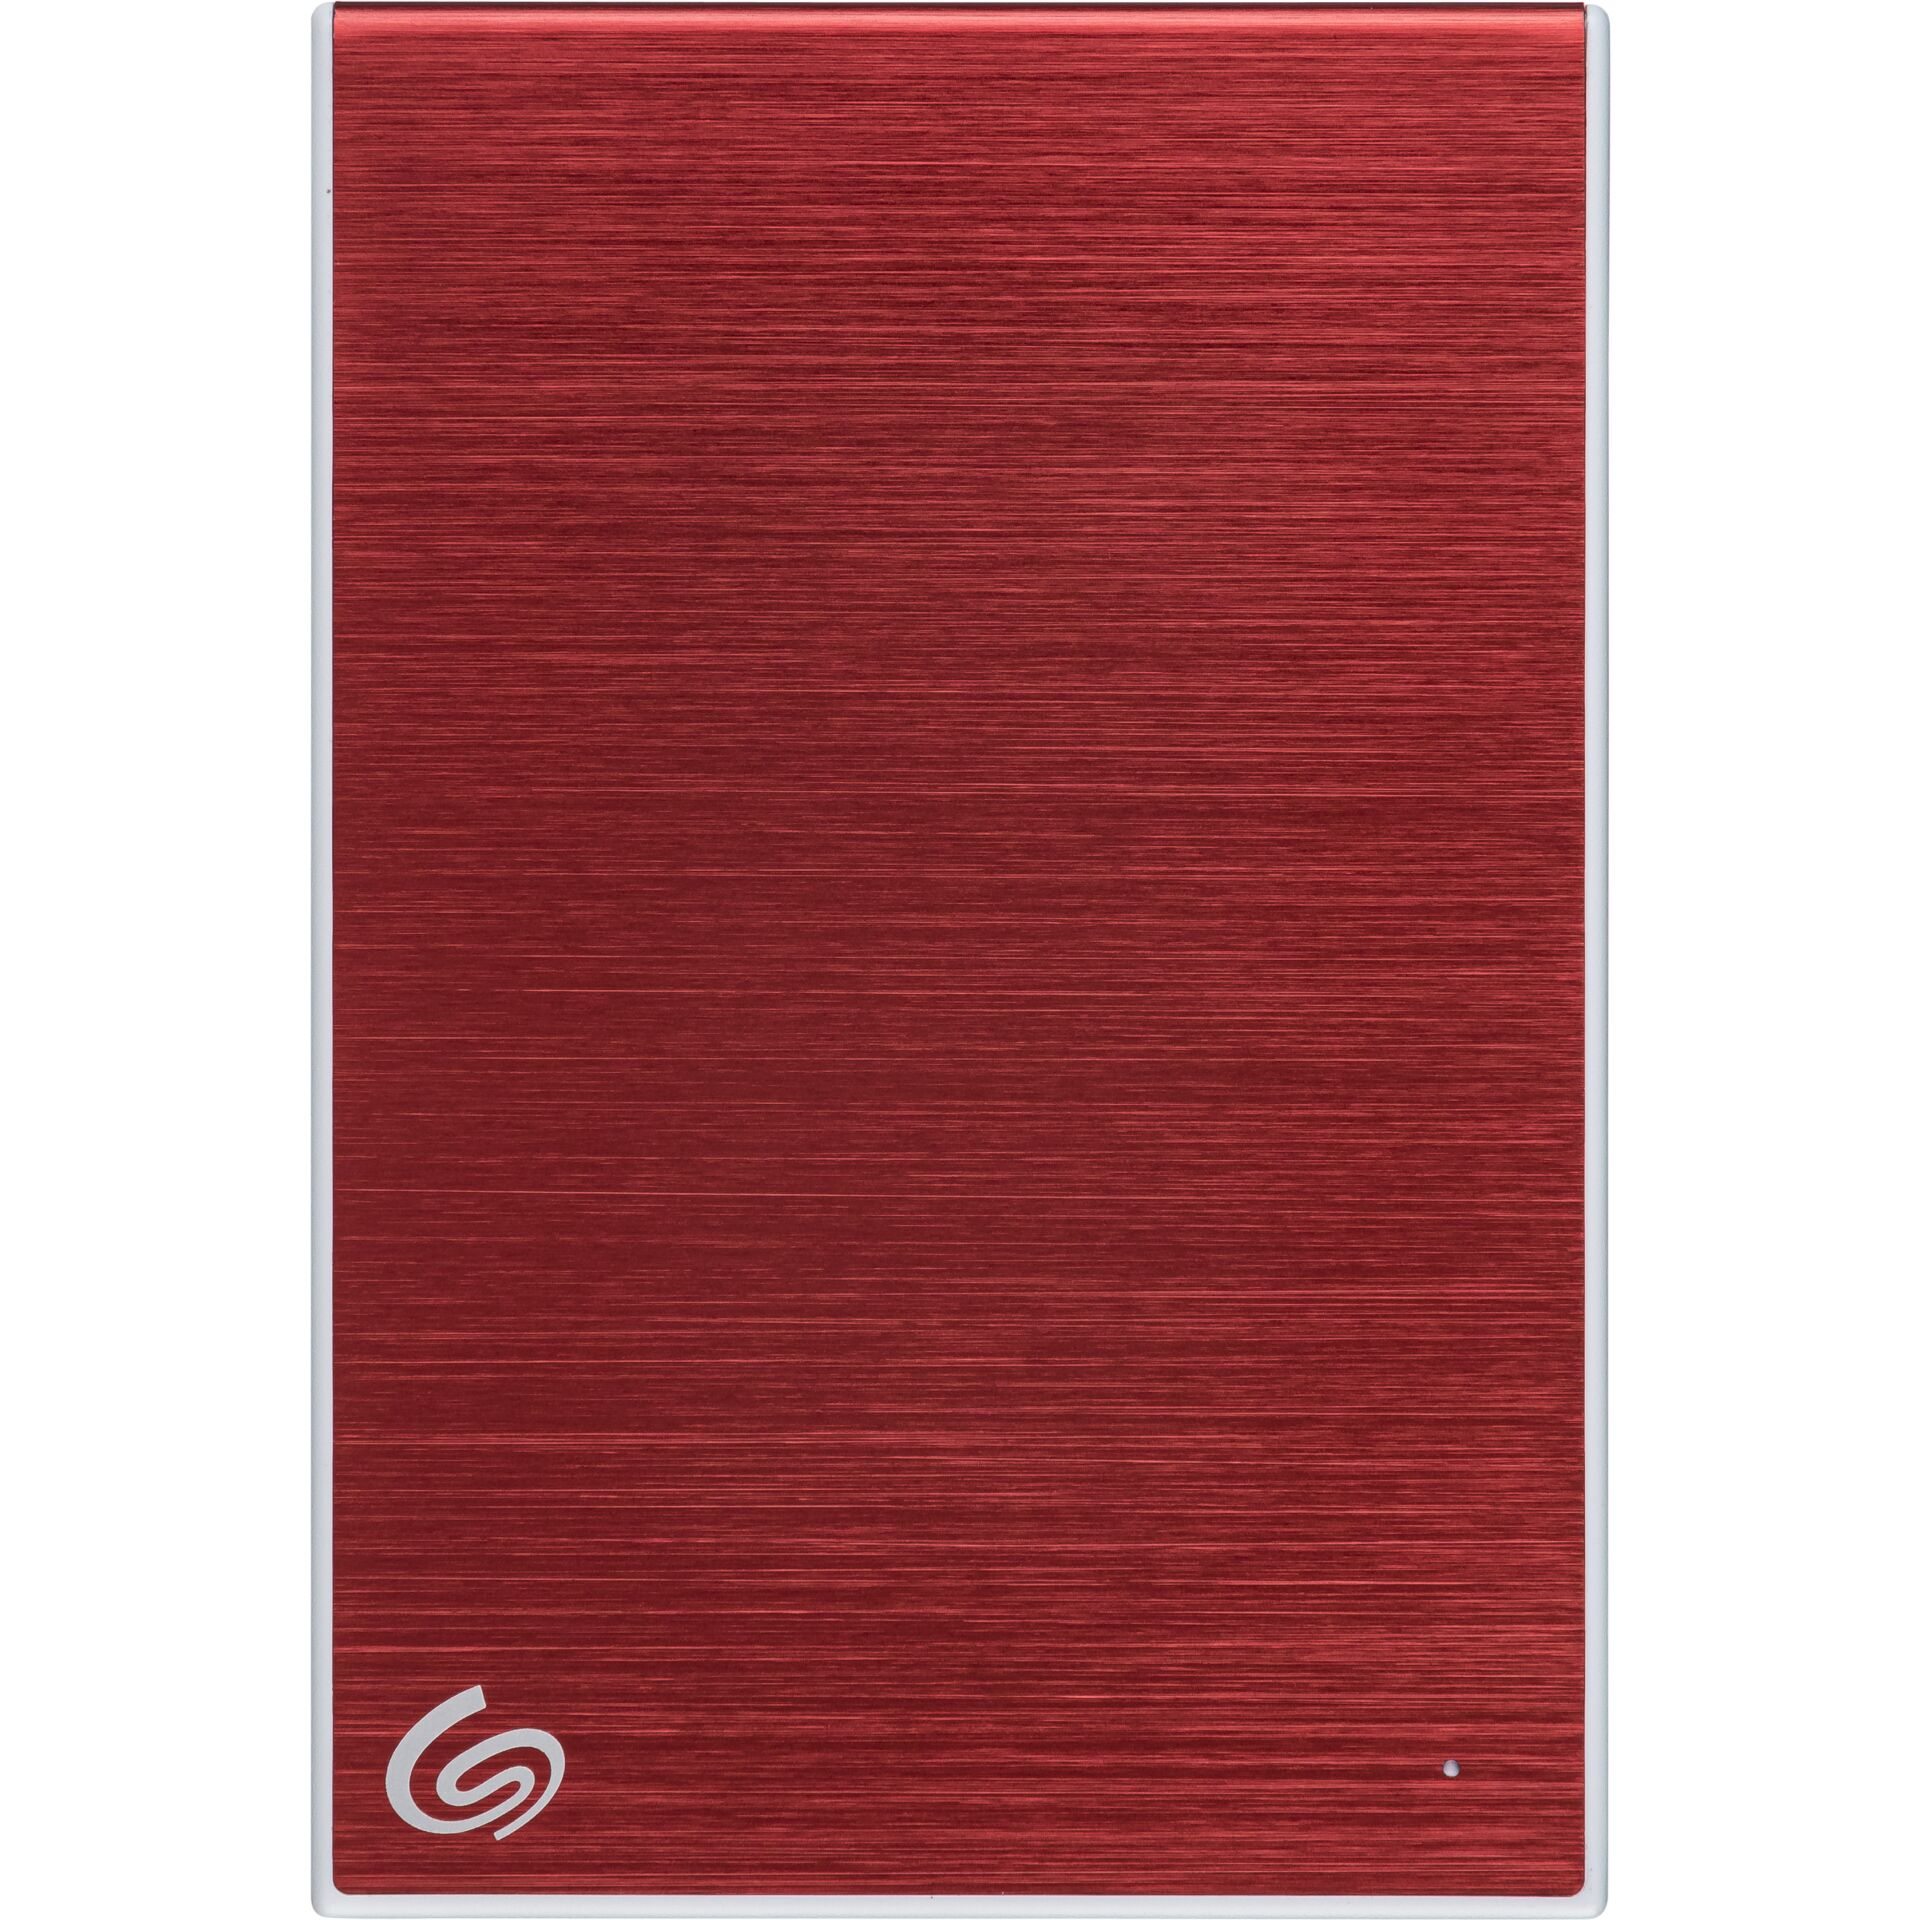 Seagate One Touch portable 2TB Red USB 3.0